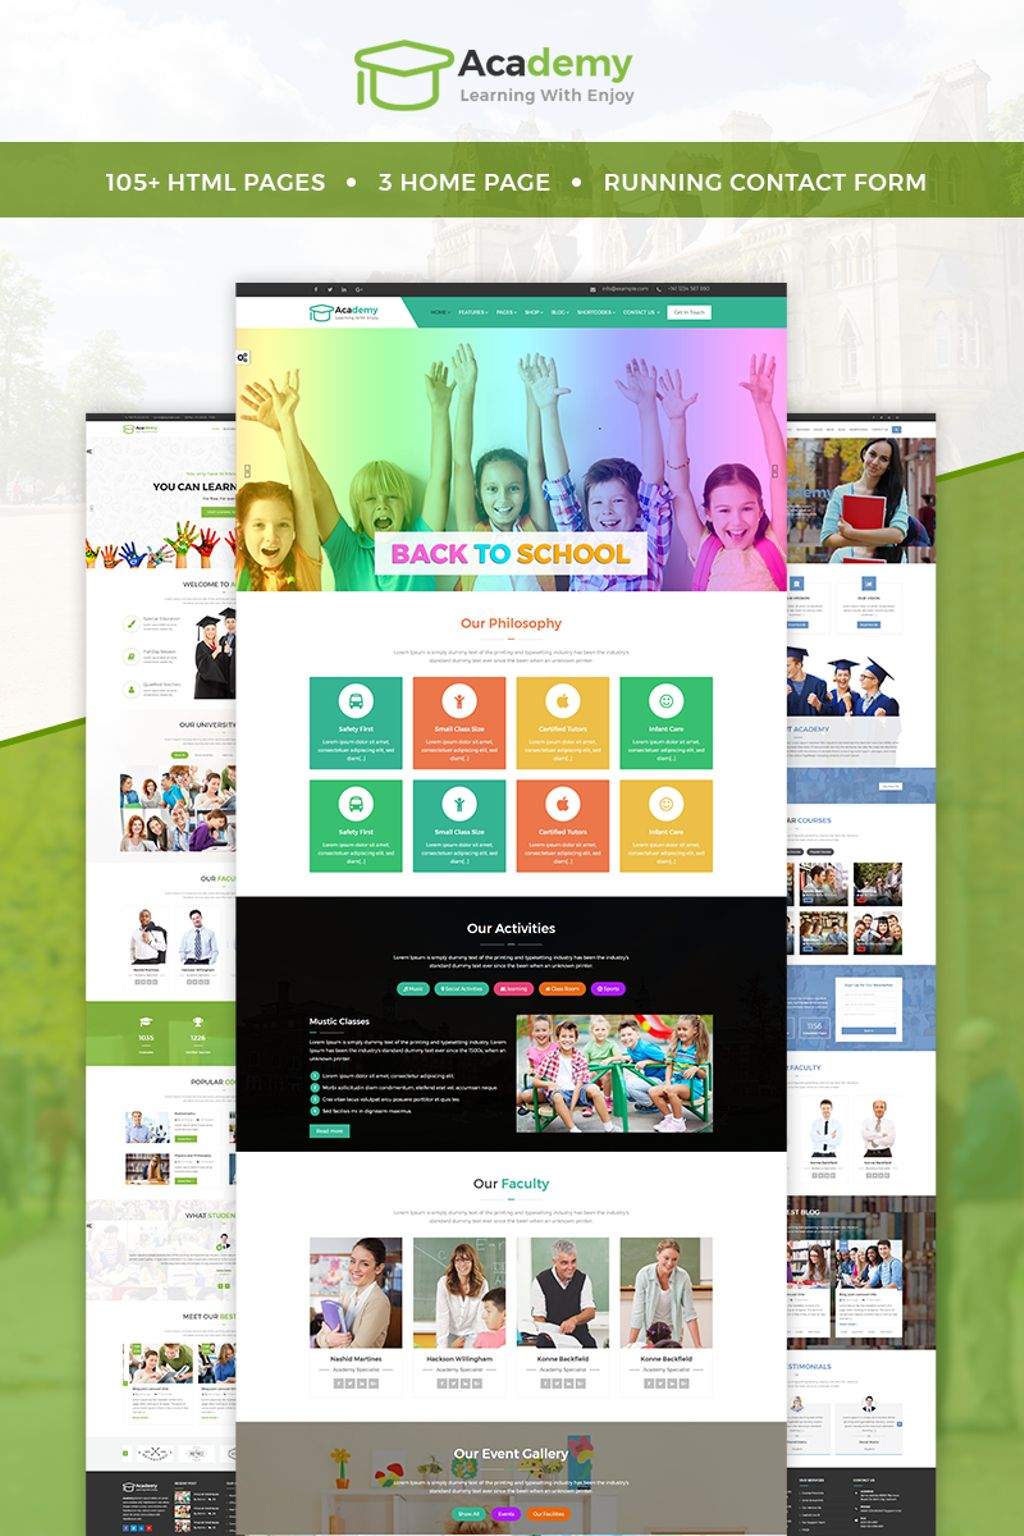 Academy - Education, Learning Courses & Institute Website Template ...